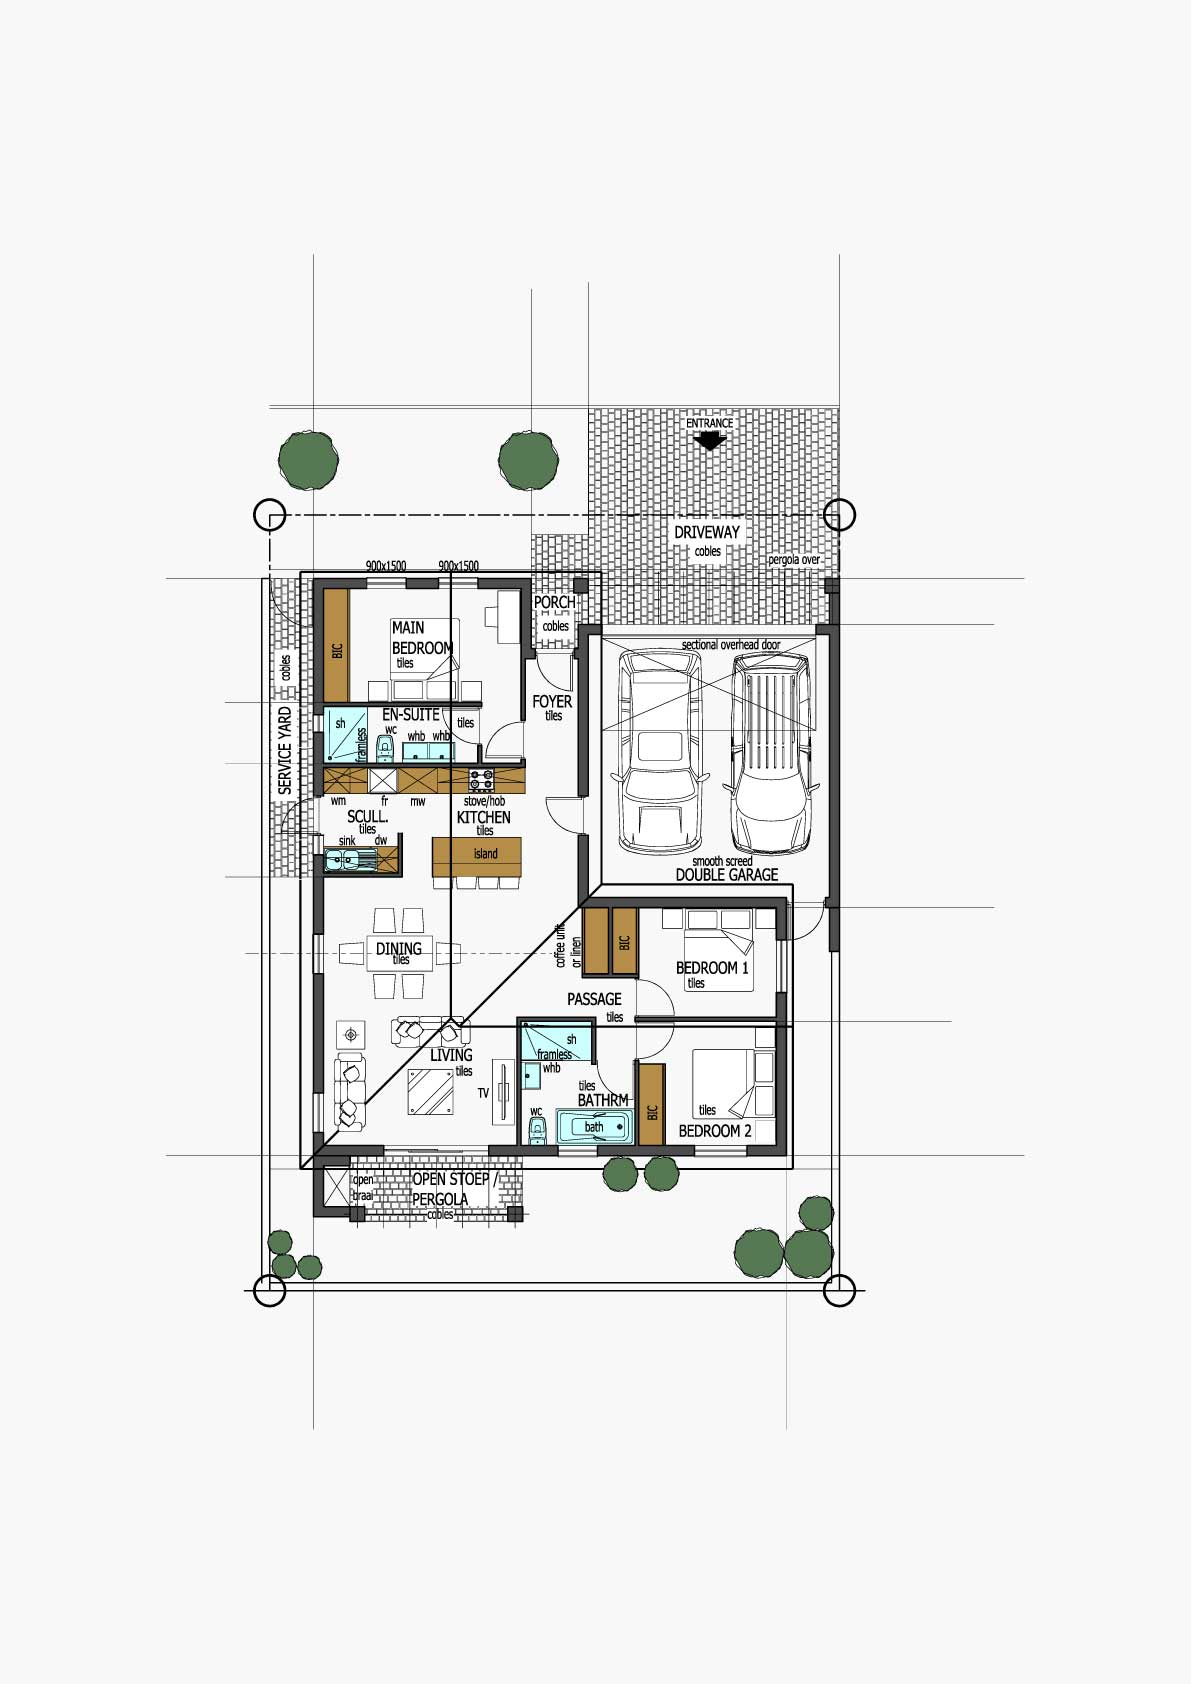 Homes Unit Layout - Type A